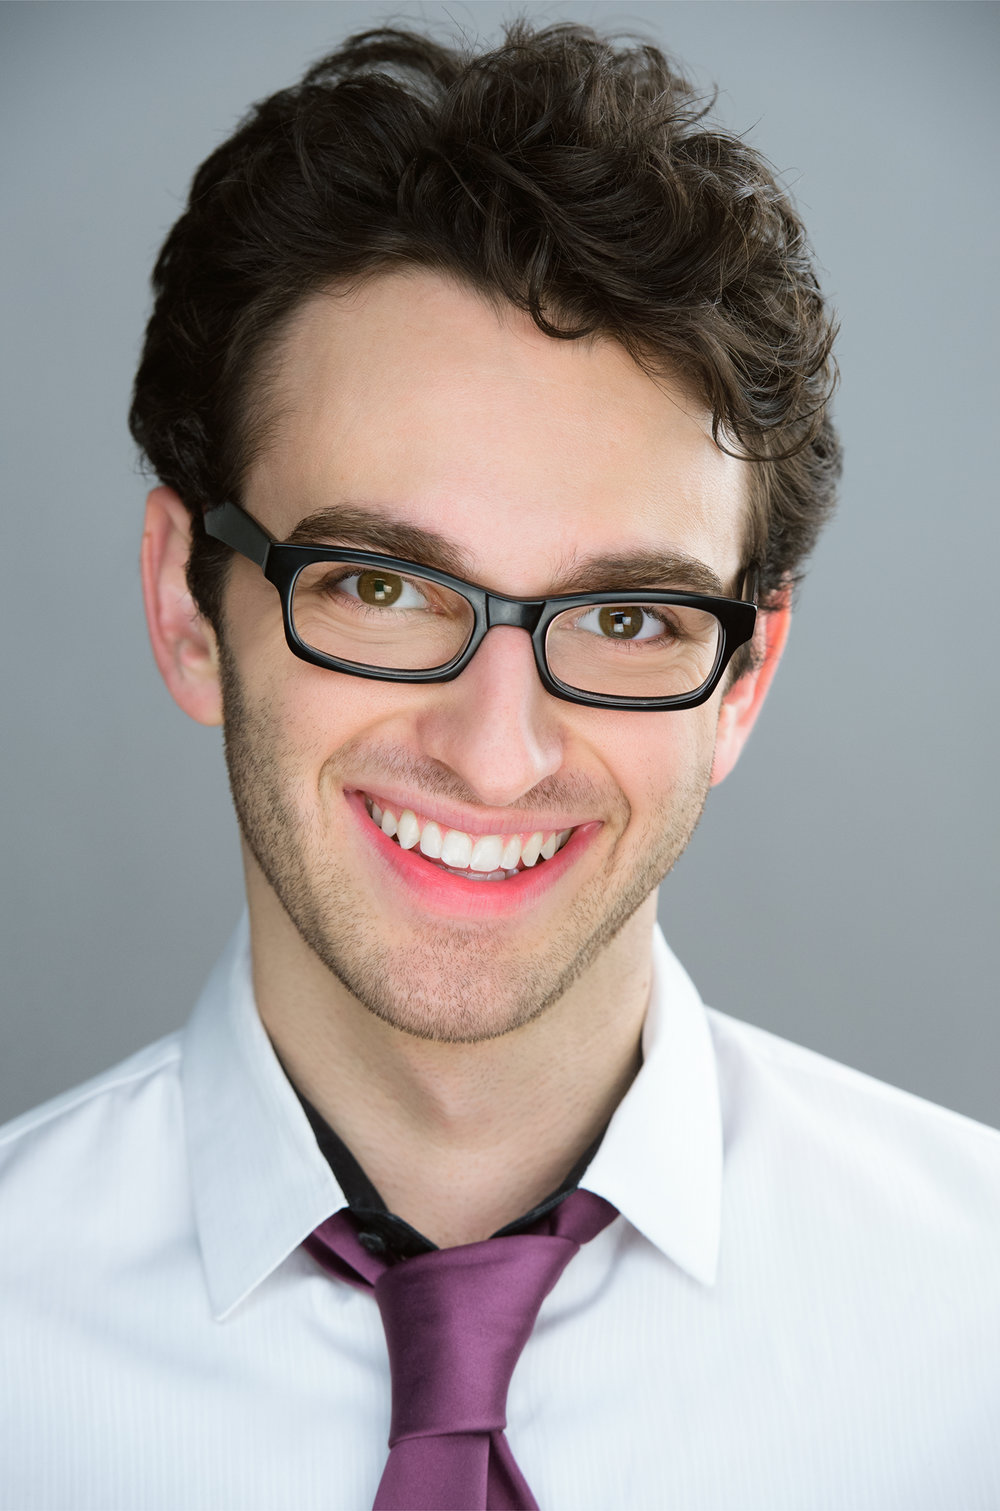 Gianmarco Headshot Glasses.jpg